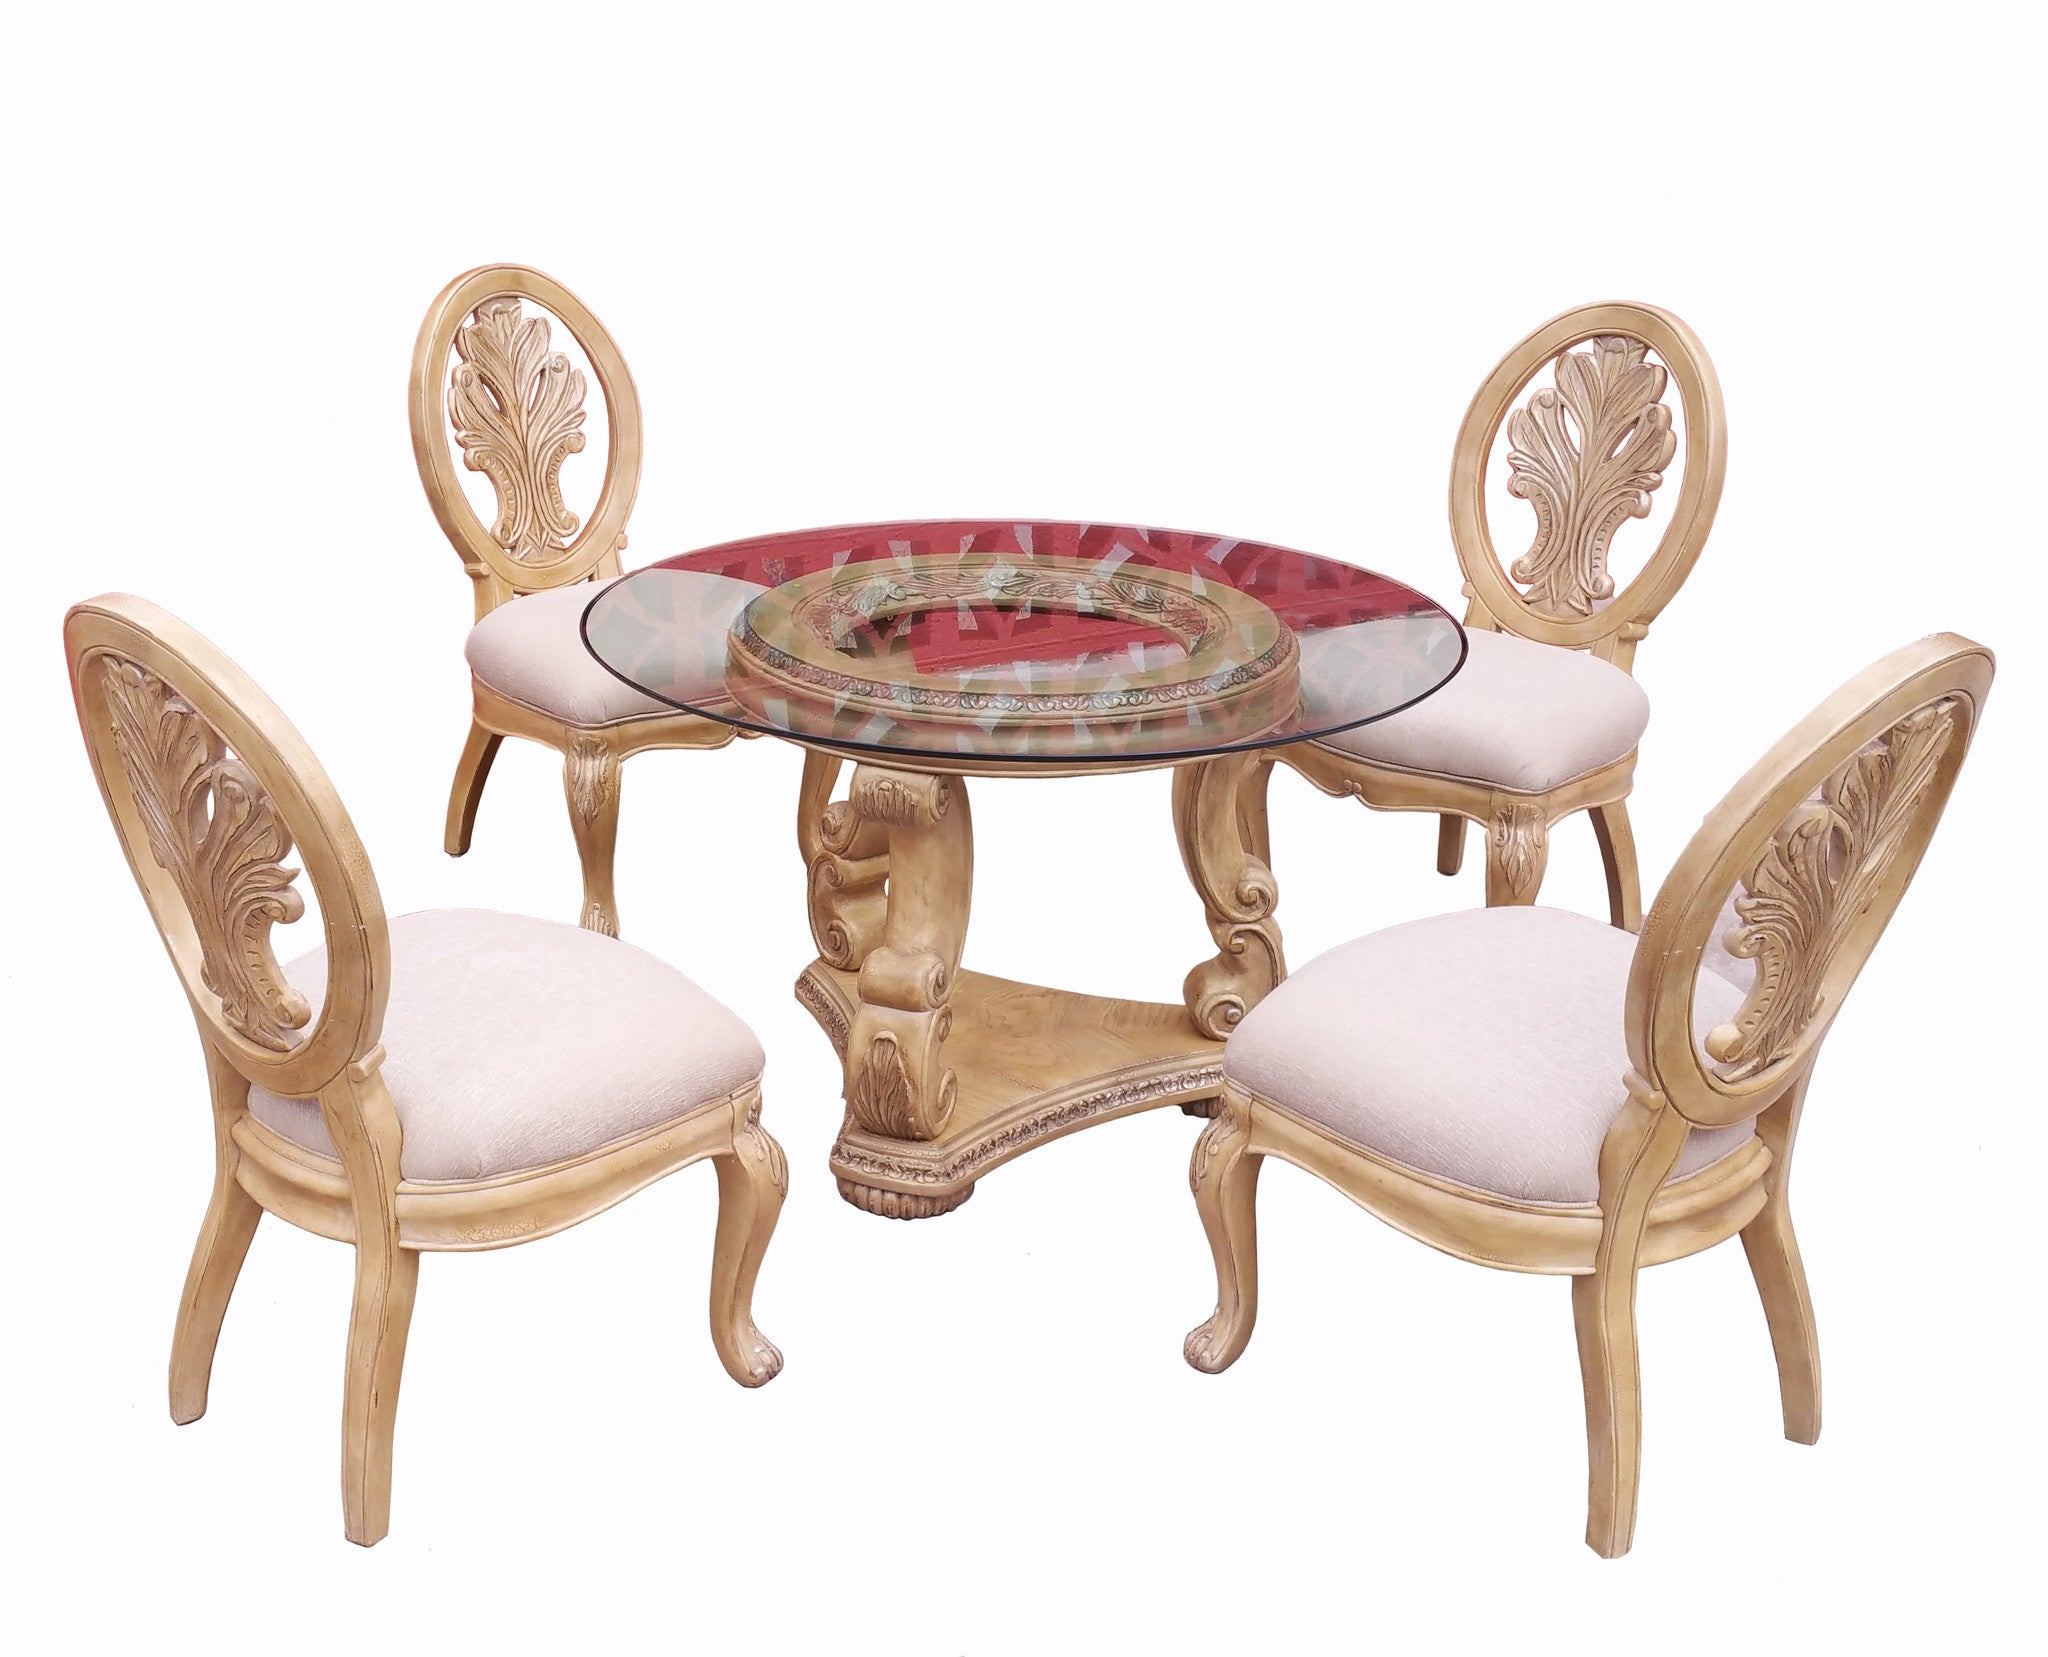 Schnadig Empire Round Pedestal Dining Table W Glass Top And 4 Chairs